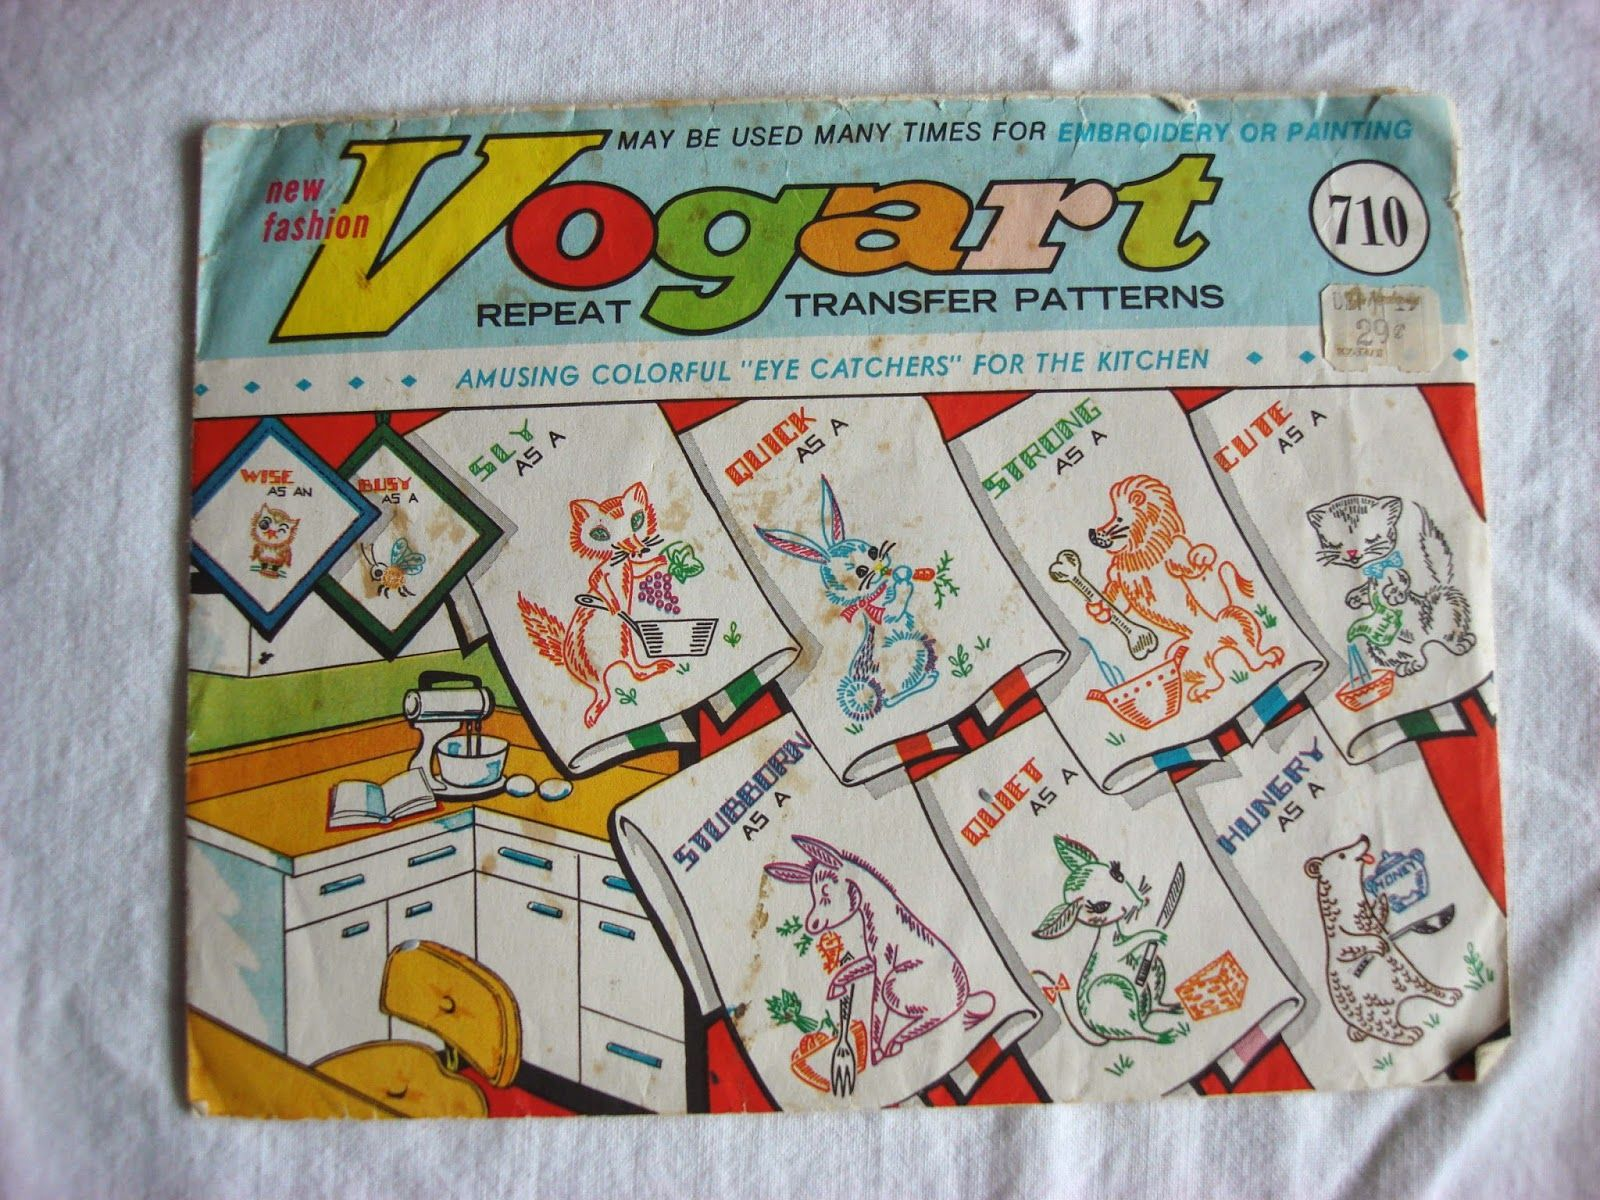 Bobby pin bandit vintage vogart embroidery patterns sewing bobby pin bandit vintage vogart embroidery patterns bankloansurffo Choice Image